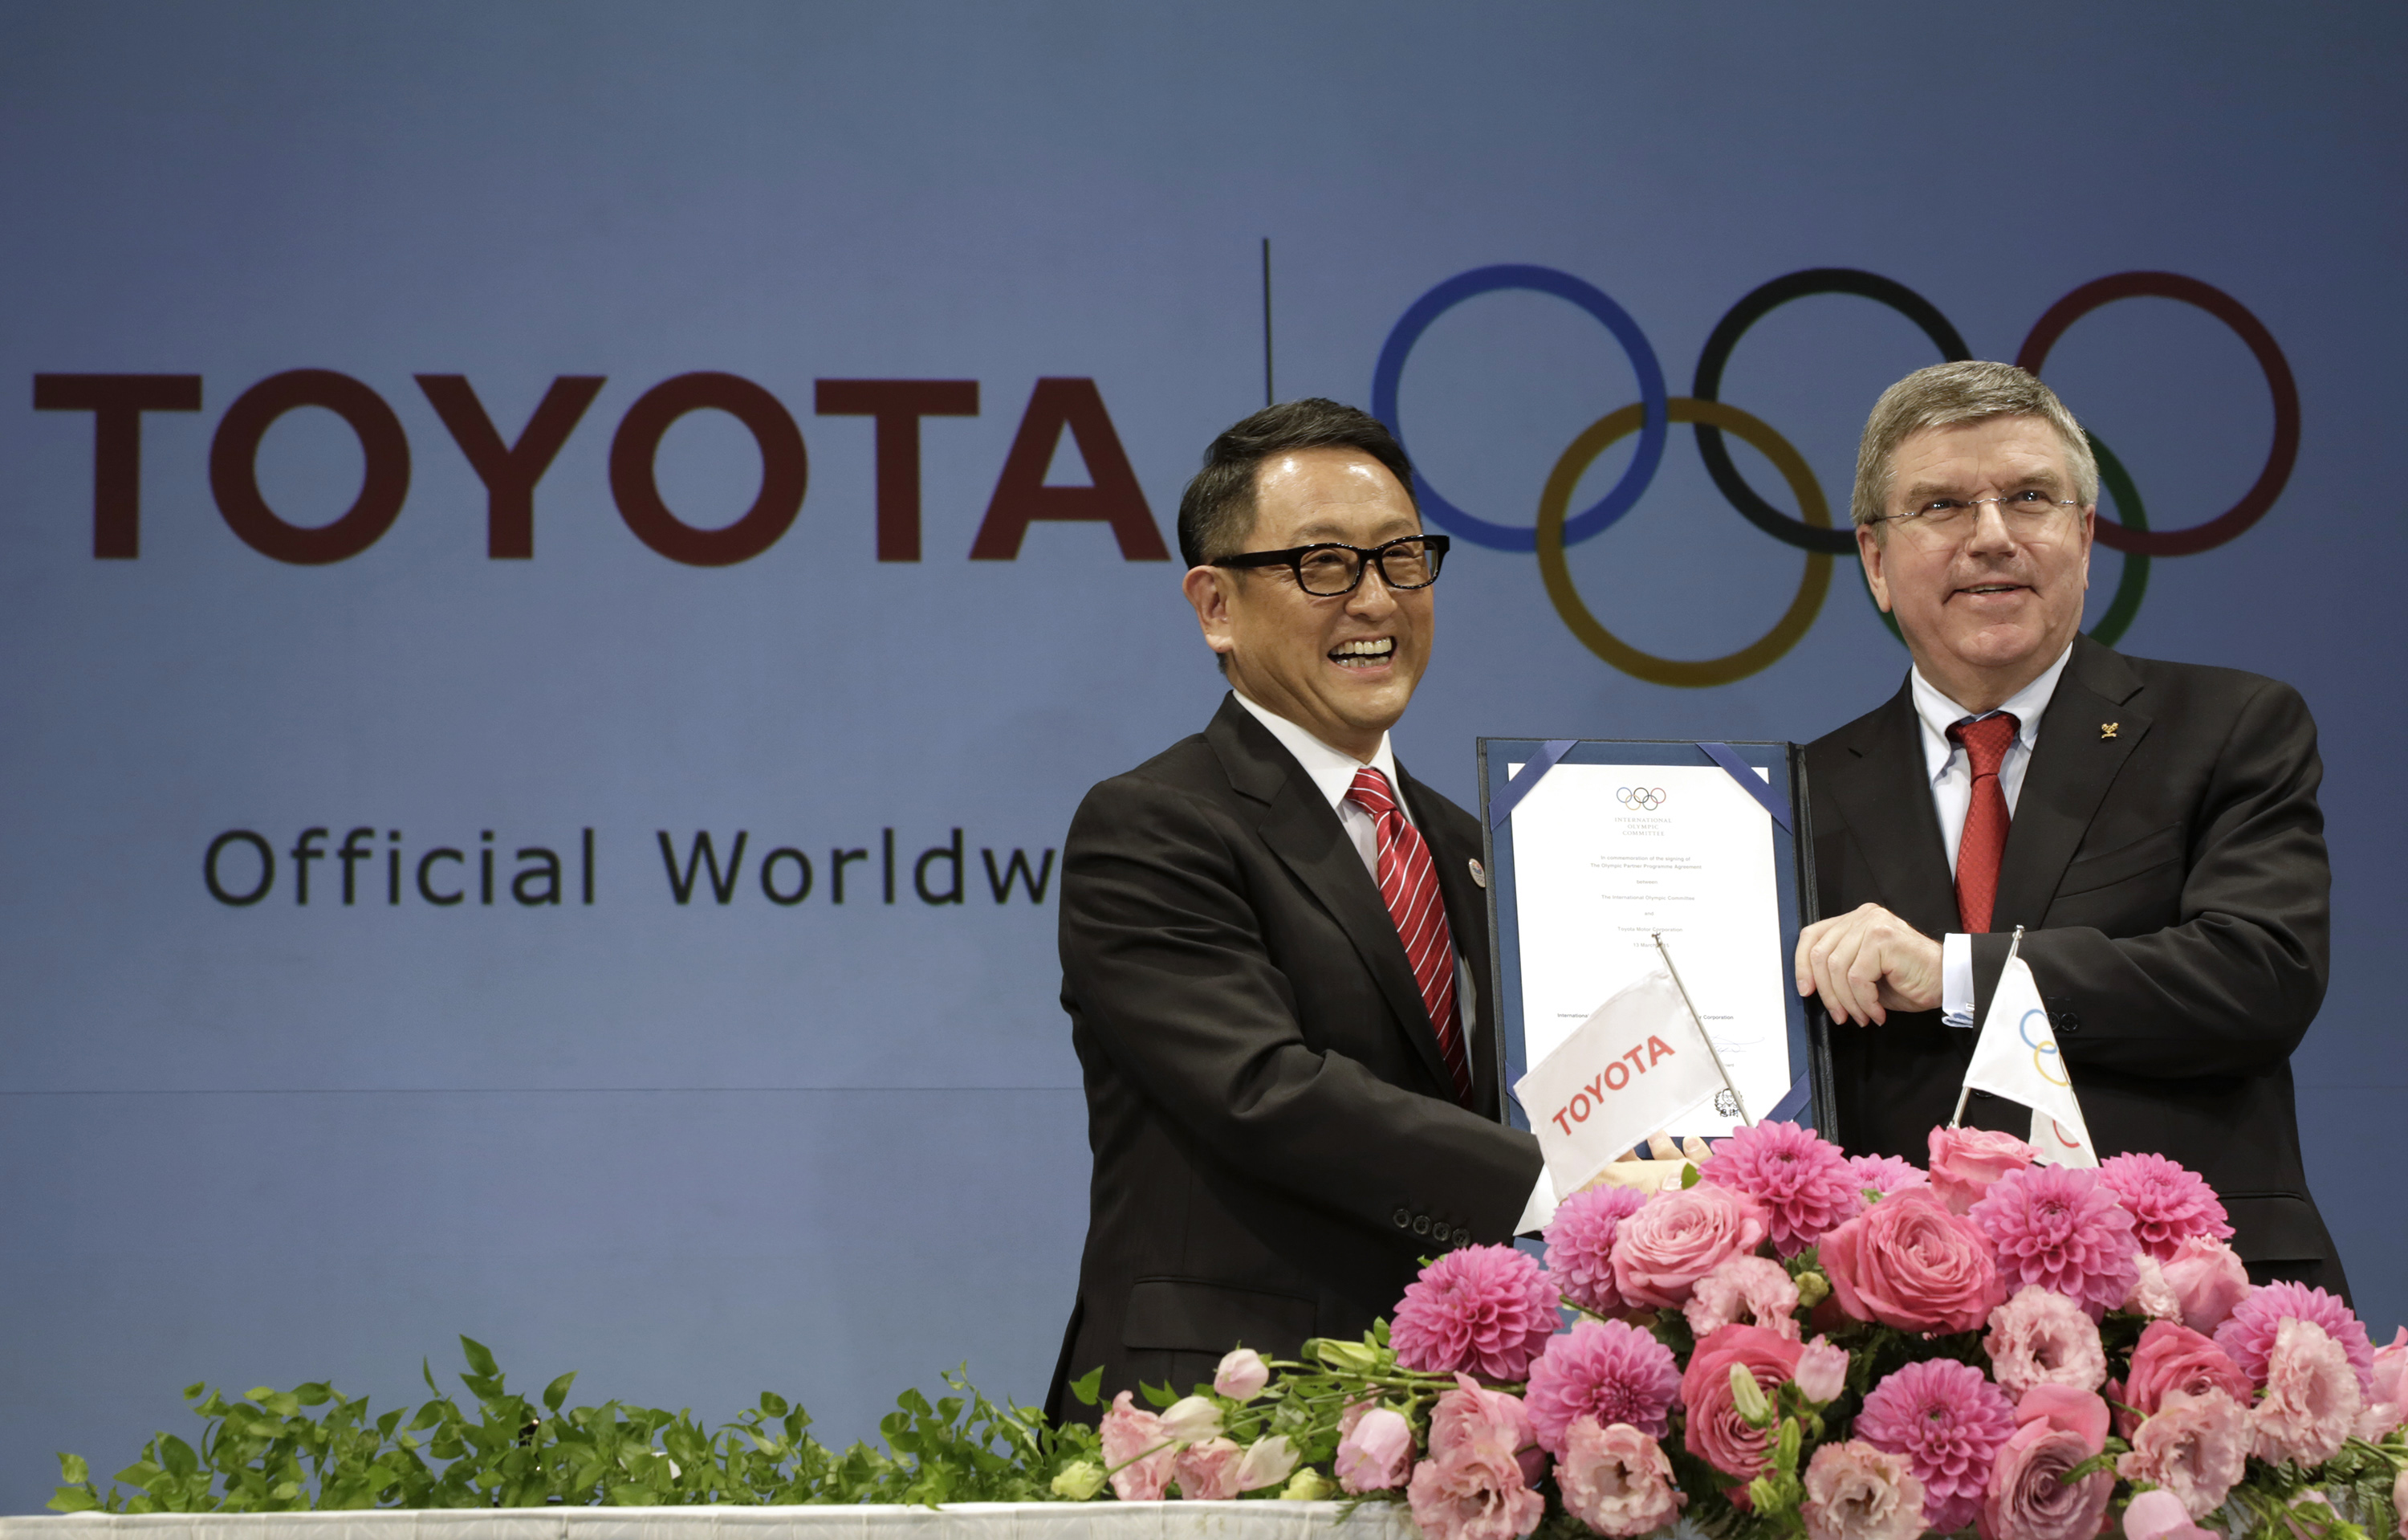 FILE - In this March 13, 2015 file photo, Toyota President and CEO Akio Toyoda, left, smiles with International Olympic Committee (IOC) President Thomas Bach as they pose with a signed document during a press conference in Tokyo as the Japanese auto giant